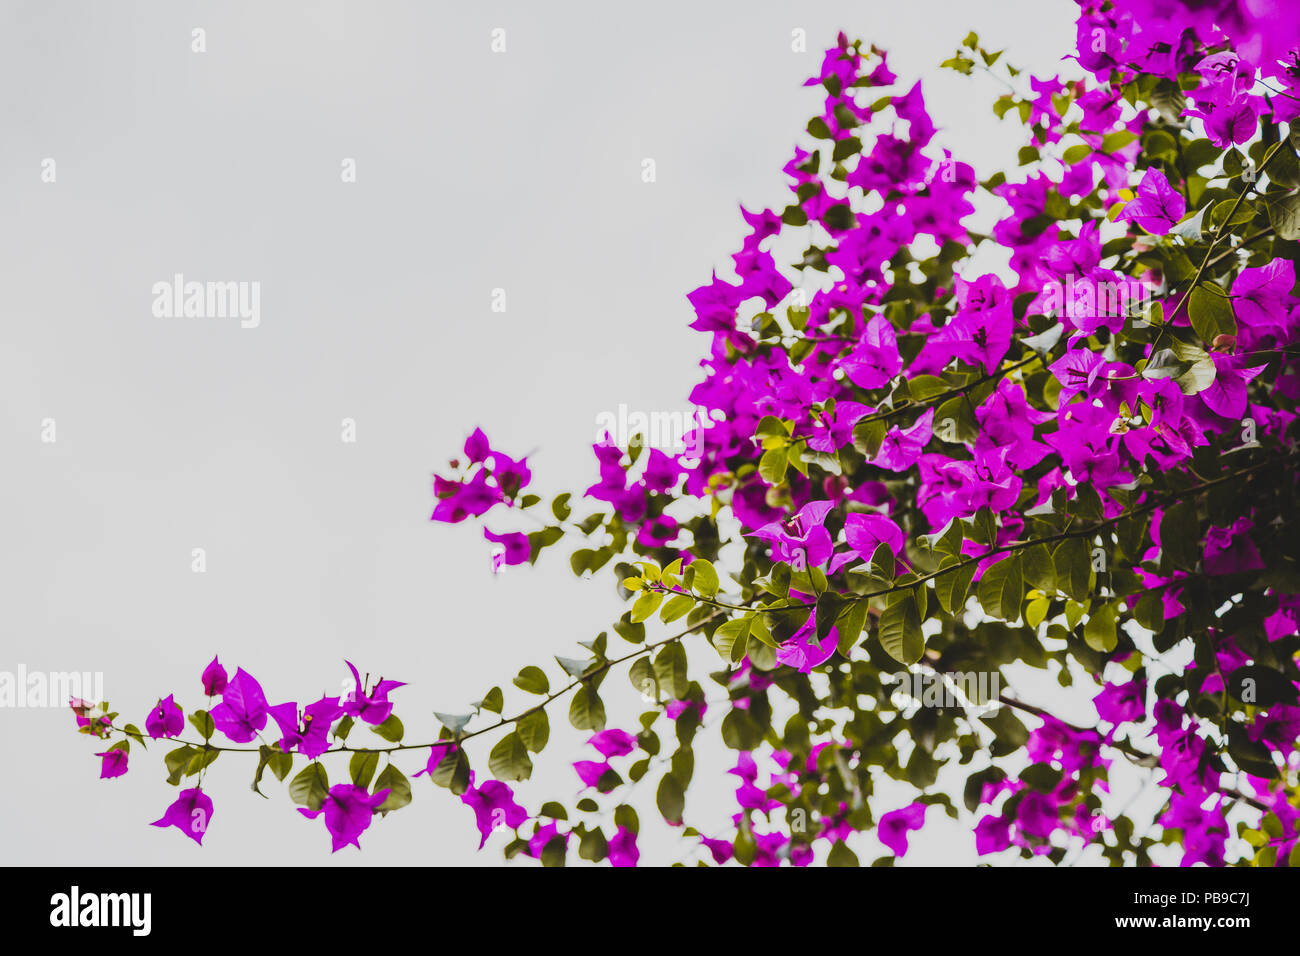 Abstract natural nature pink flowers background spring and summer abstract natural nature pink flowers background spring and summer from the lap of himalayastropical flowers backgroundscloseup flowers background mightylinksfo